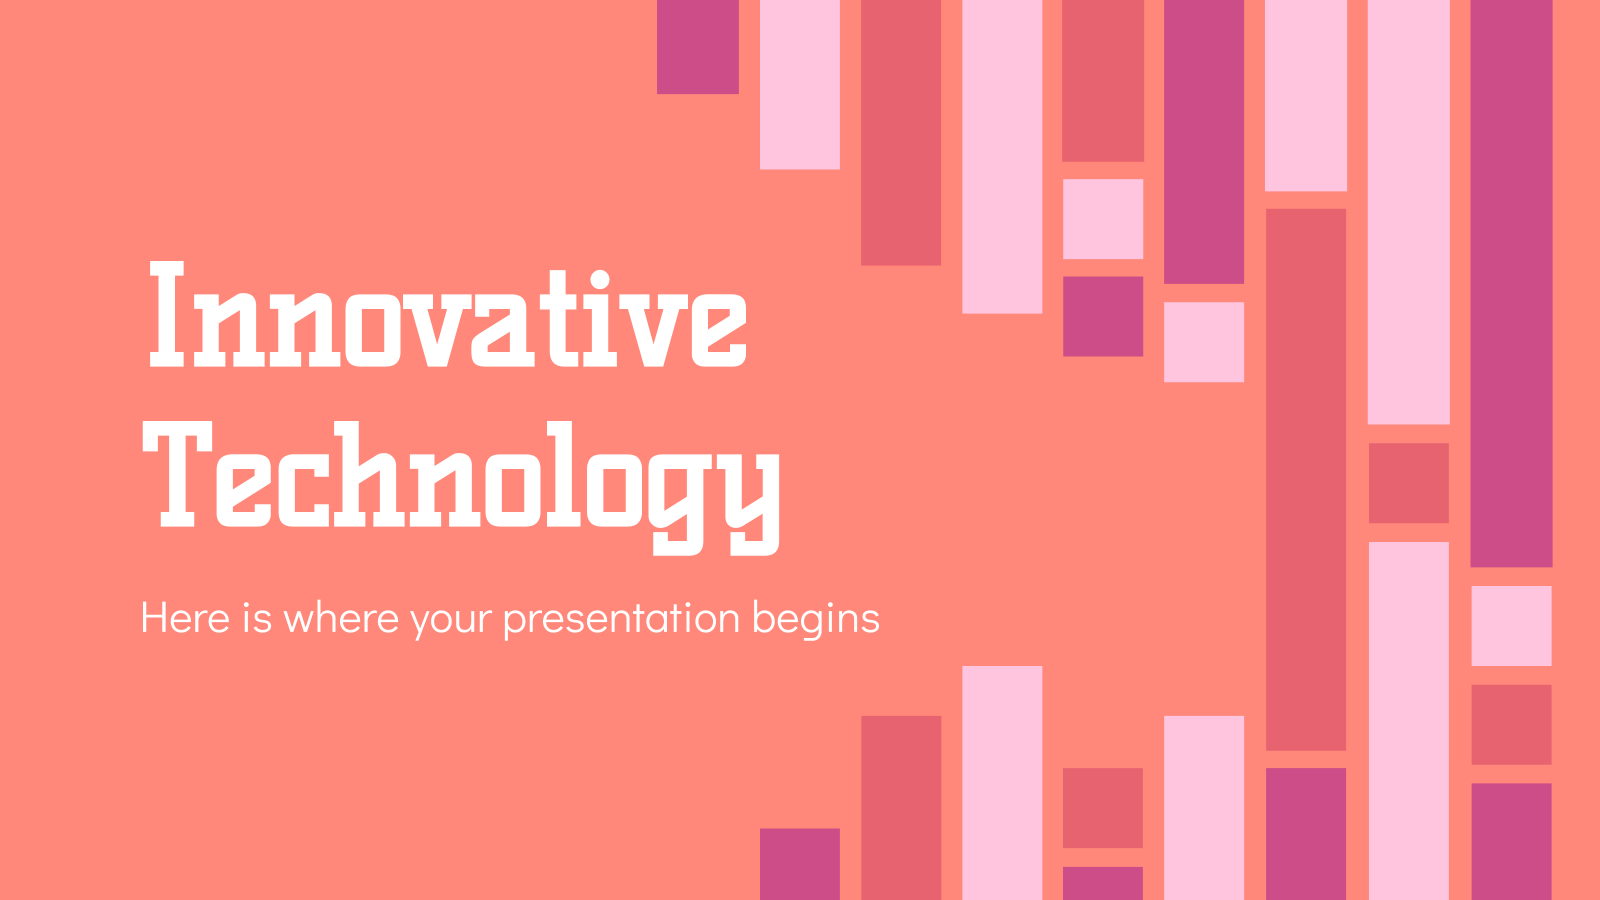 Innovative Technology presentation template